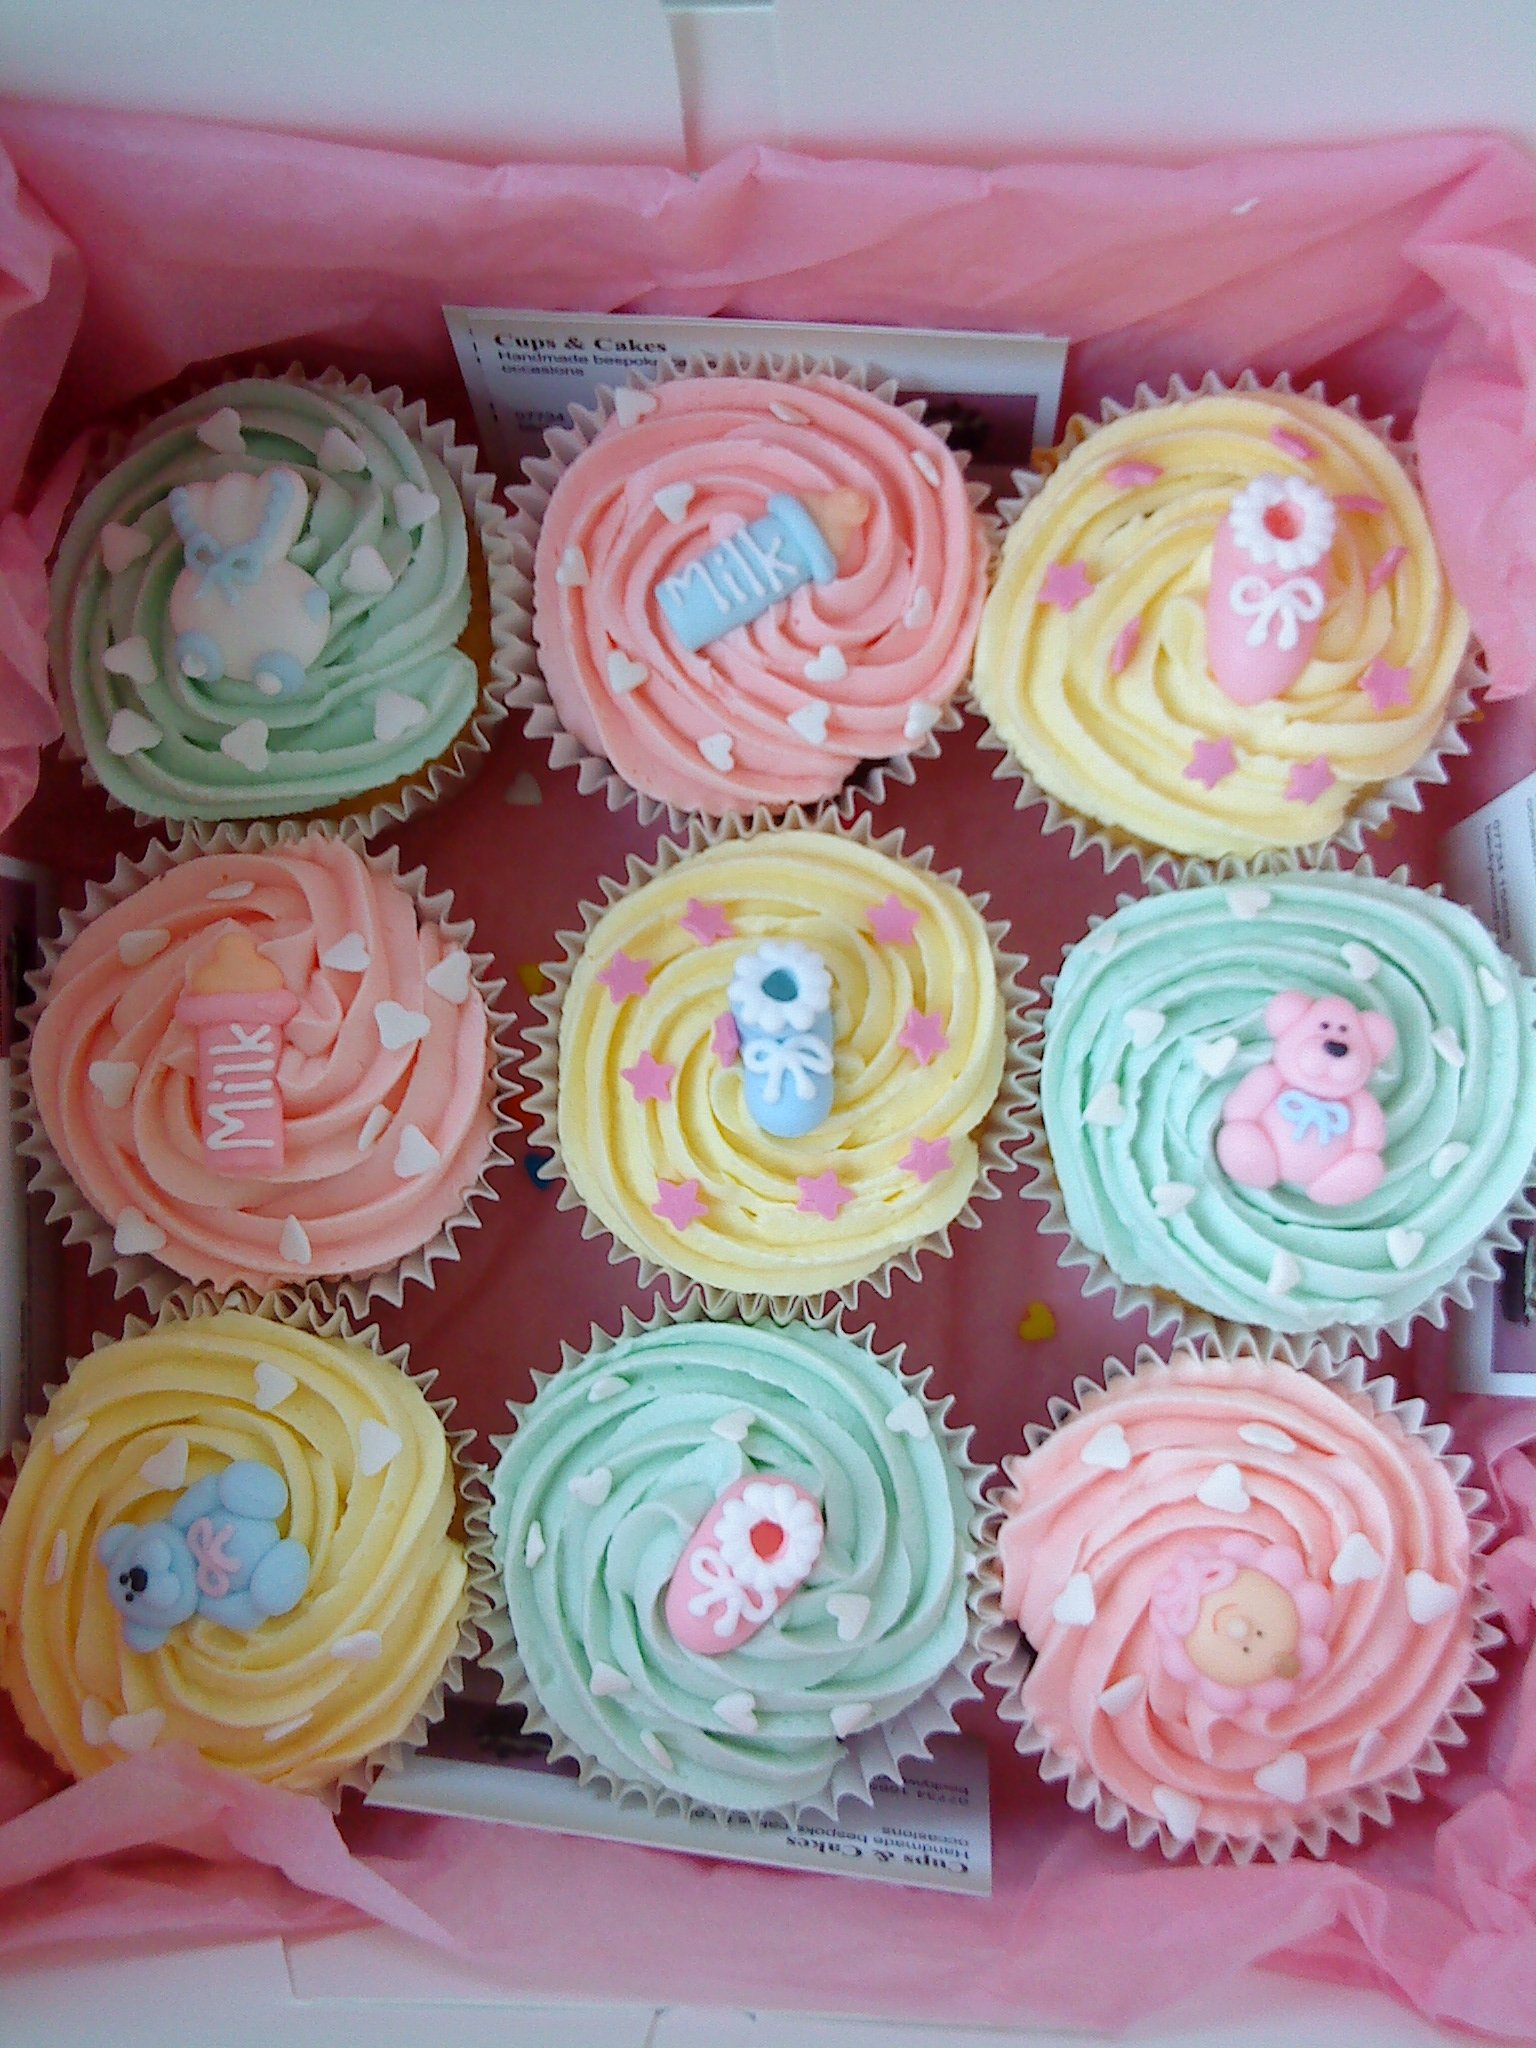 10 Famous Baby Shower Cupcake Decorating Ideas baby shower cupcake decorating ideas omega center ideas for baby 1 2021